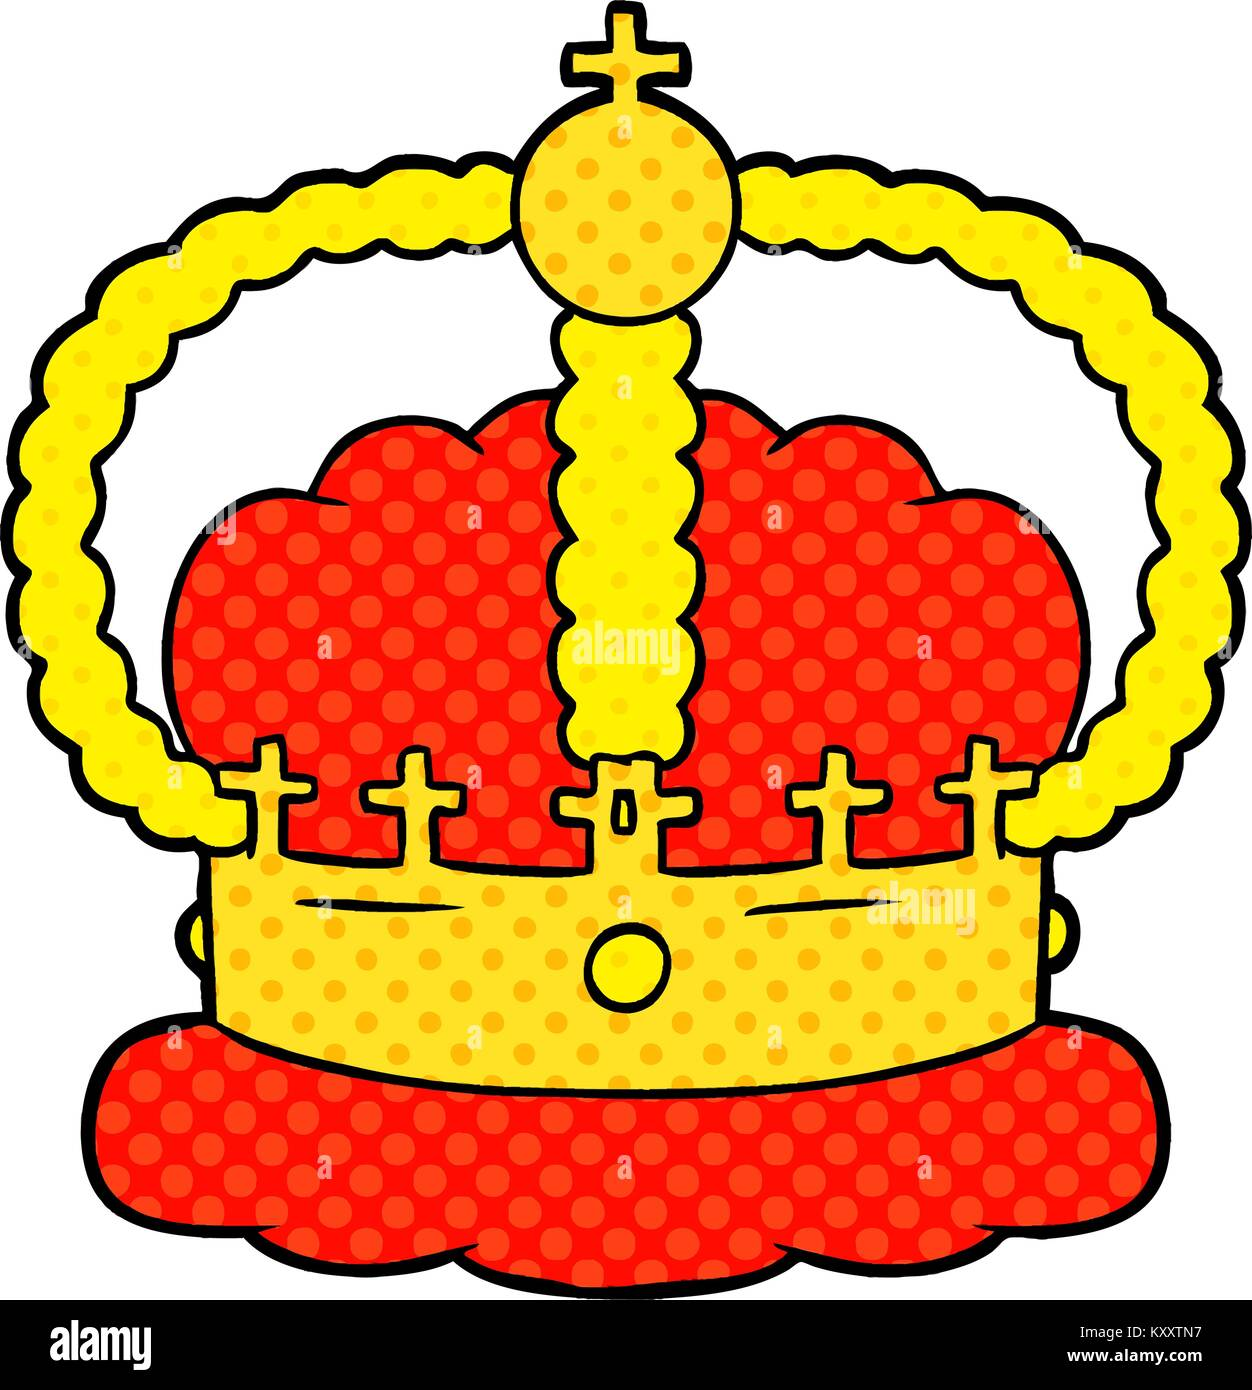 Cartoon Royal Crown High Resolution Stock Photography And Images Alamy Golden emperor prince queen royal crowns diamond coronation gold antique tiara crowning imperial corona jewels isolated illustration set. https www alamy com stock photo cartoon crown 171464531 html